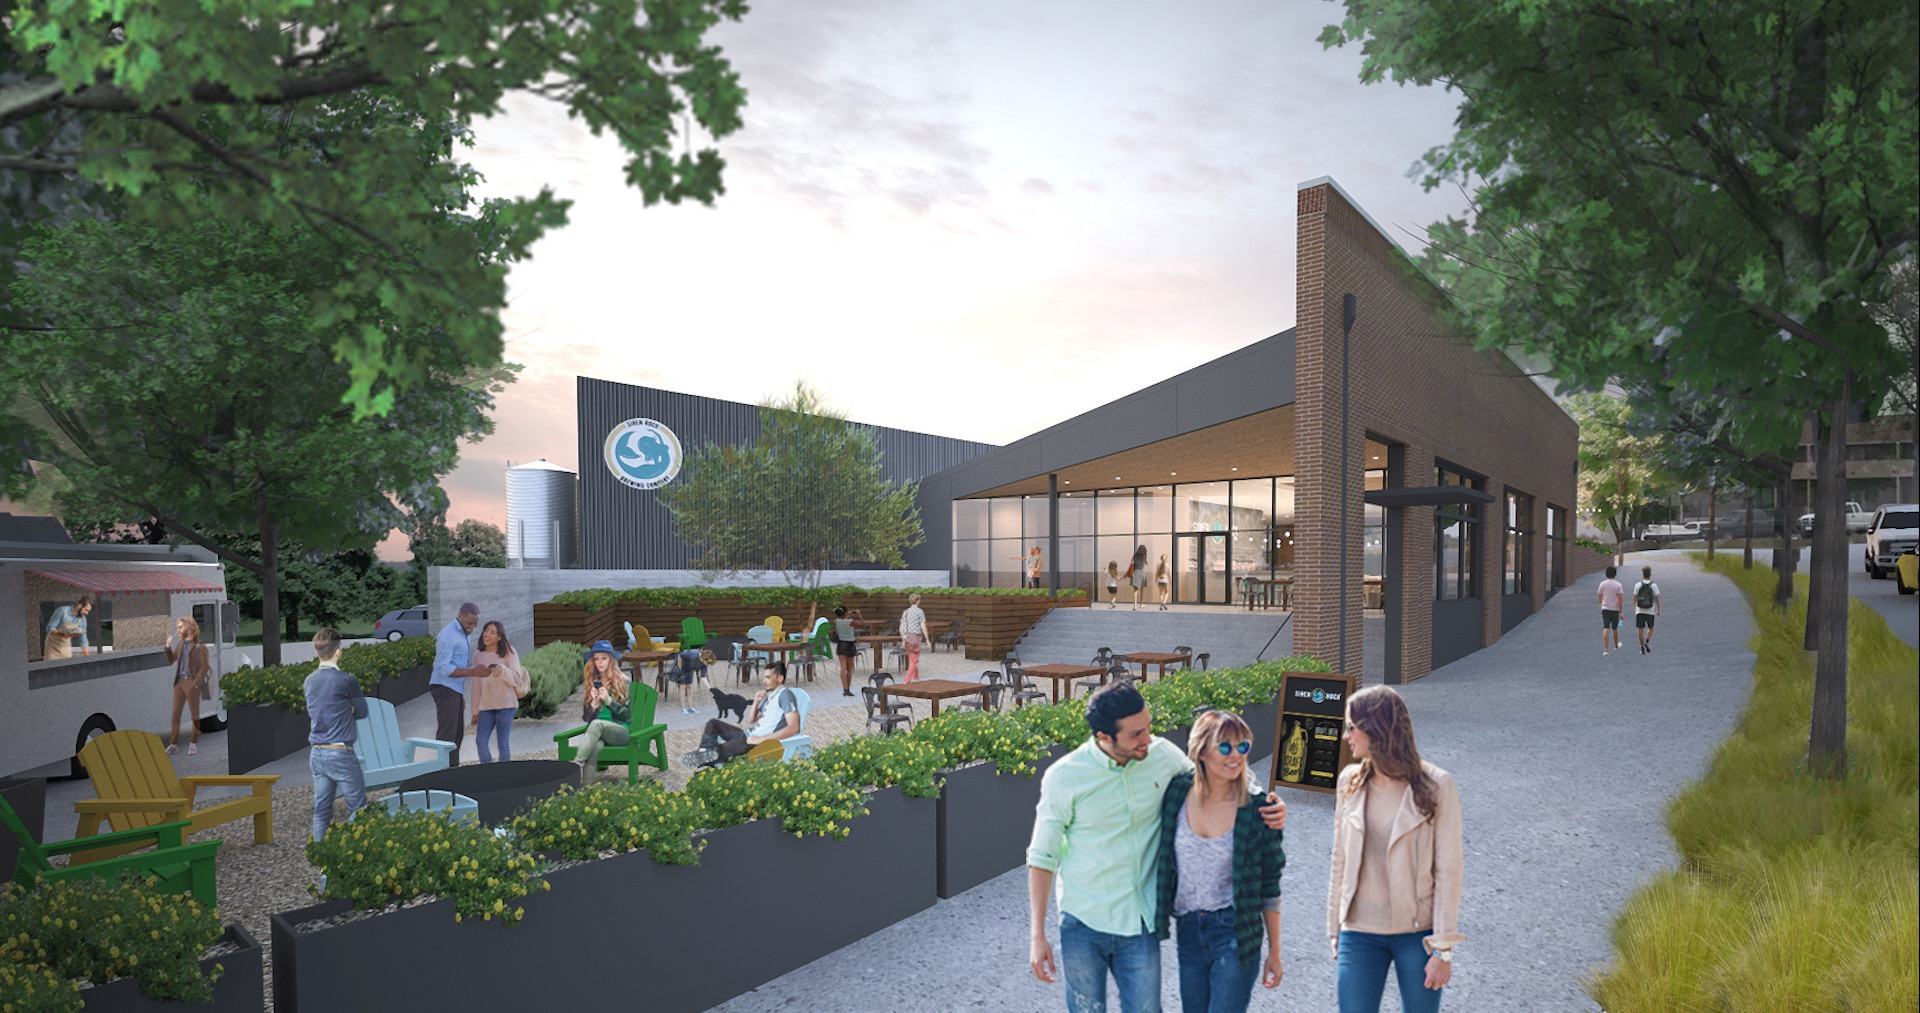 Siren Rock Announces Vertical Construction Phase of Rockwall, Texas New Brewing Facility